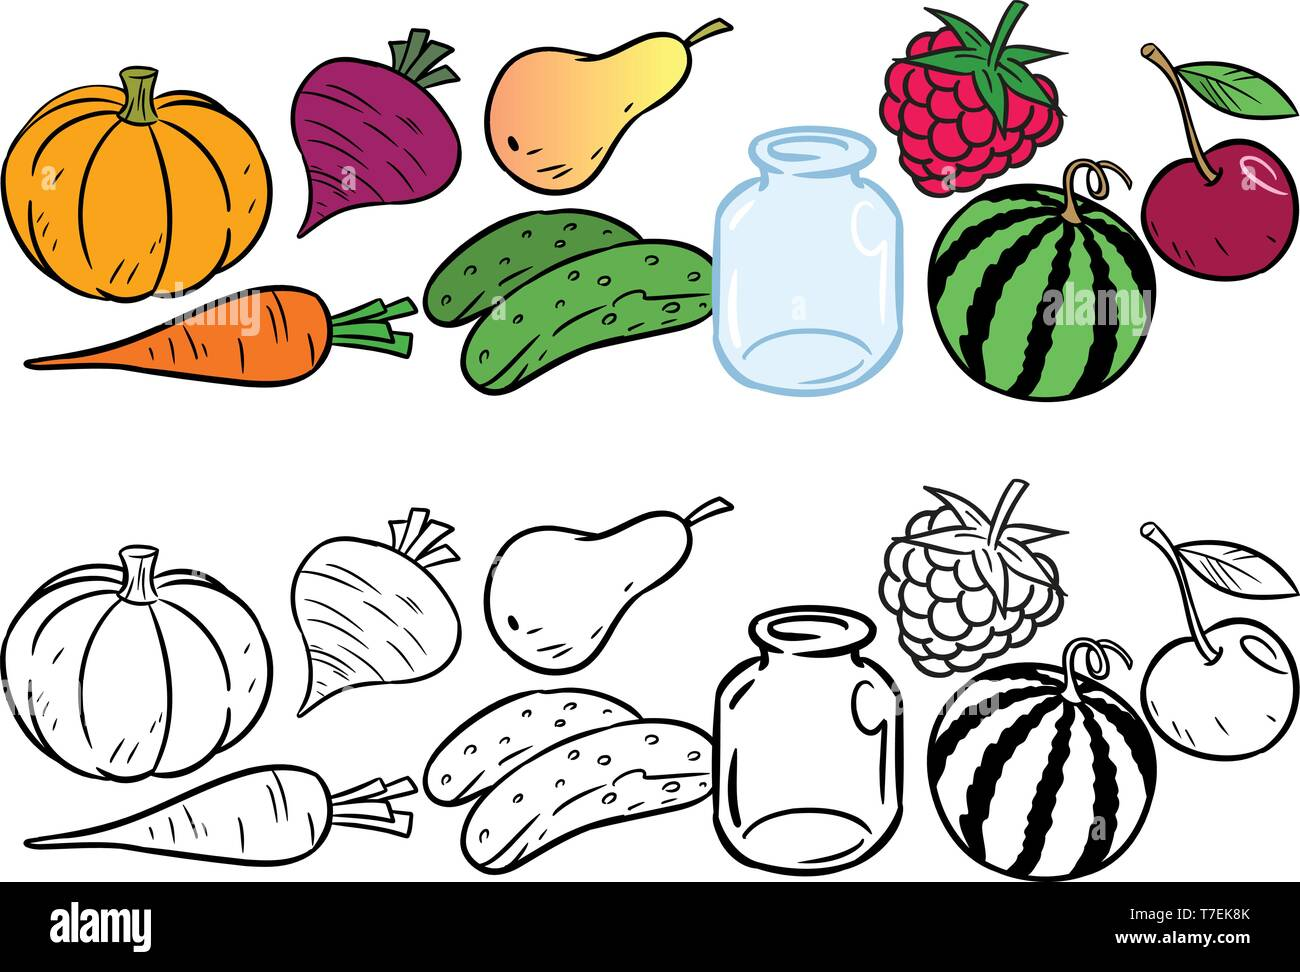 The illustration shows a set of different types of vegetables and fruits. Is made a black outline for a coloring book. - Stock Vector